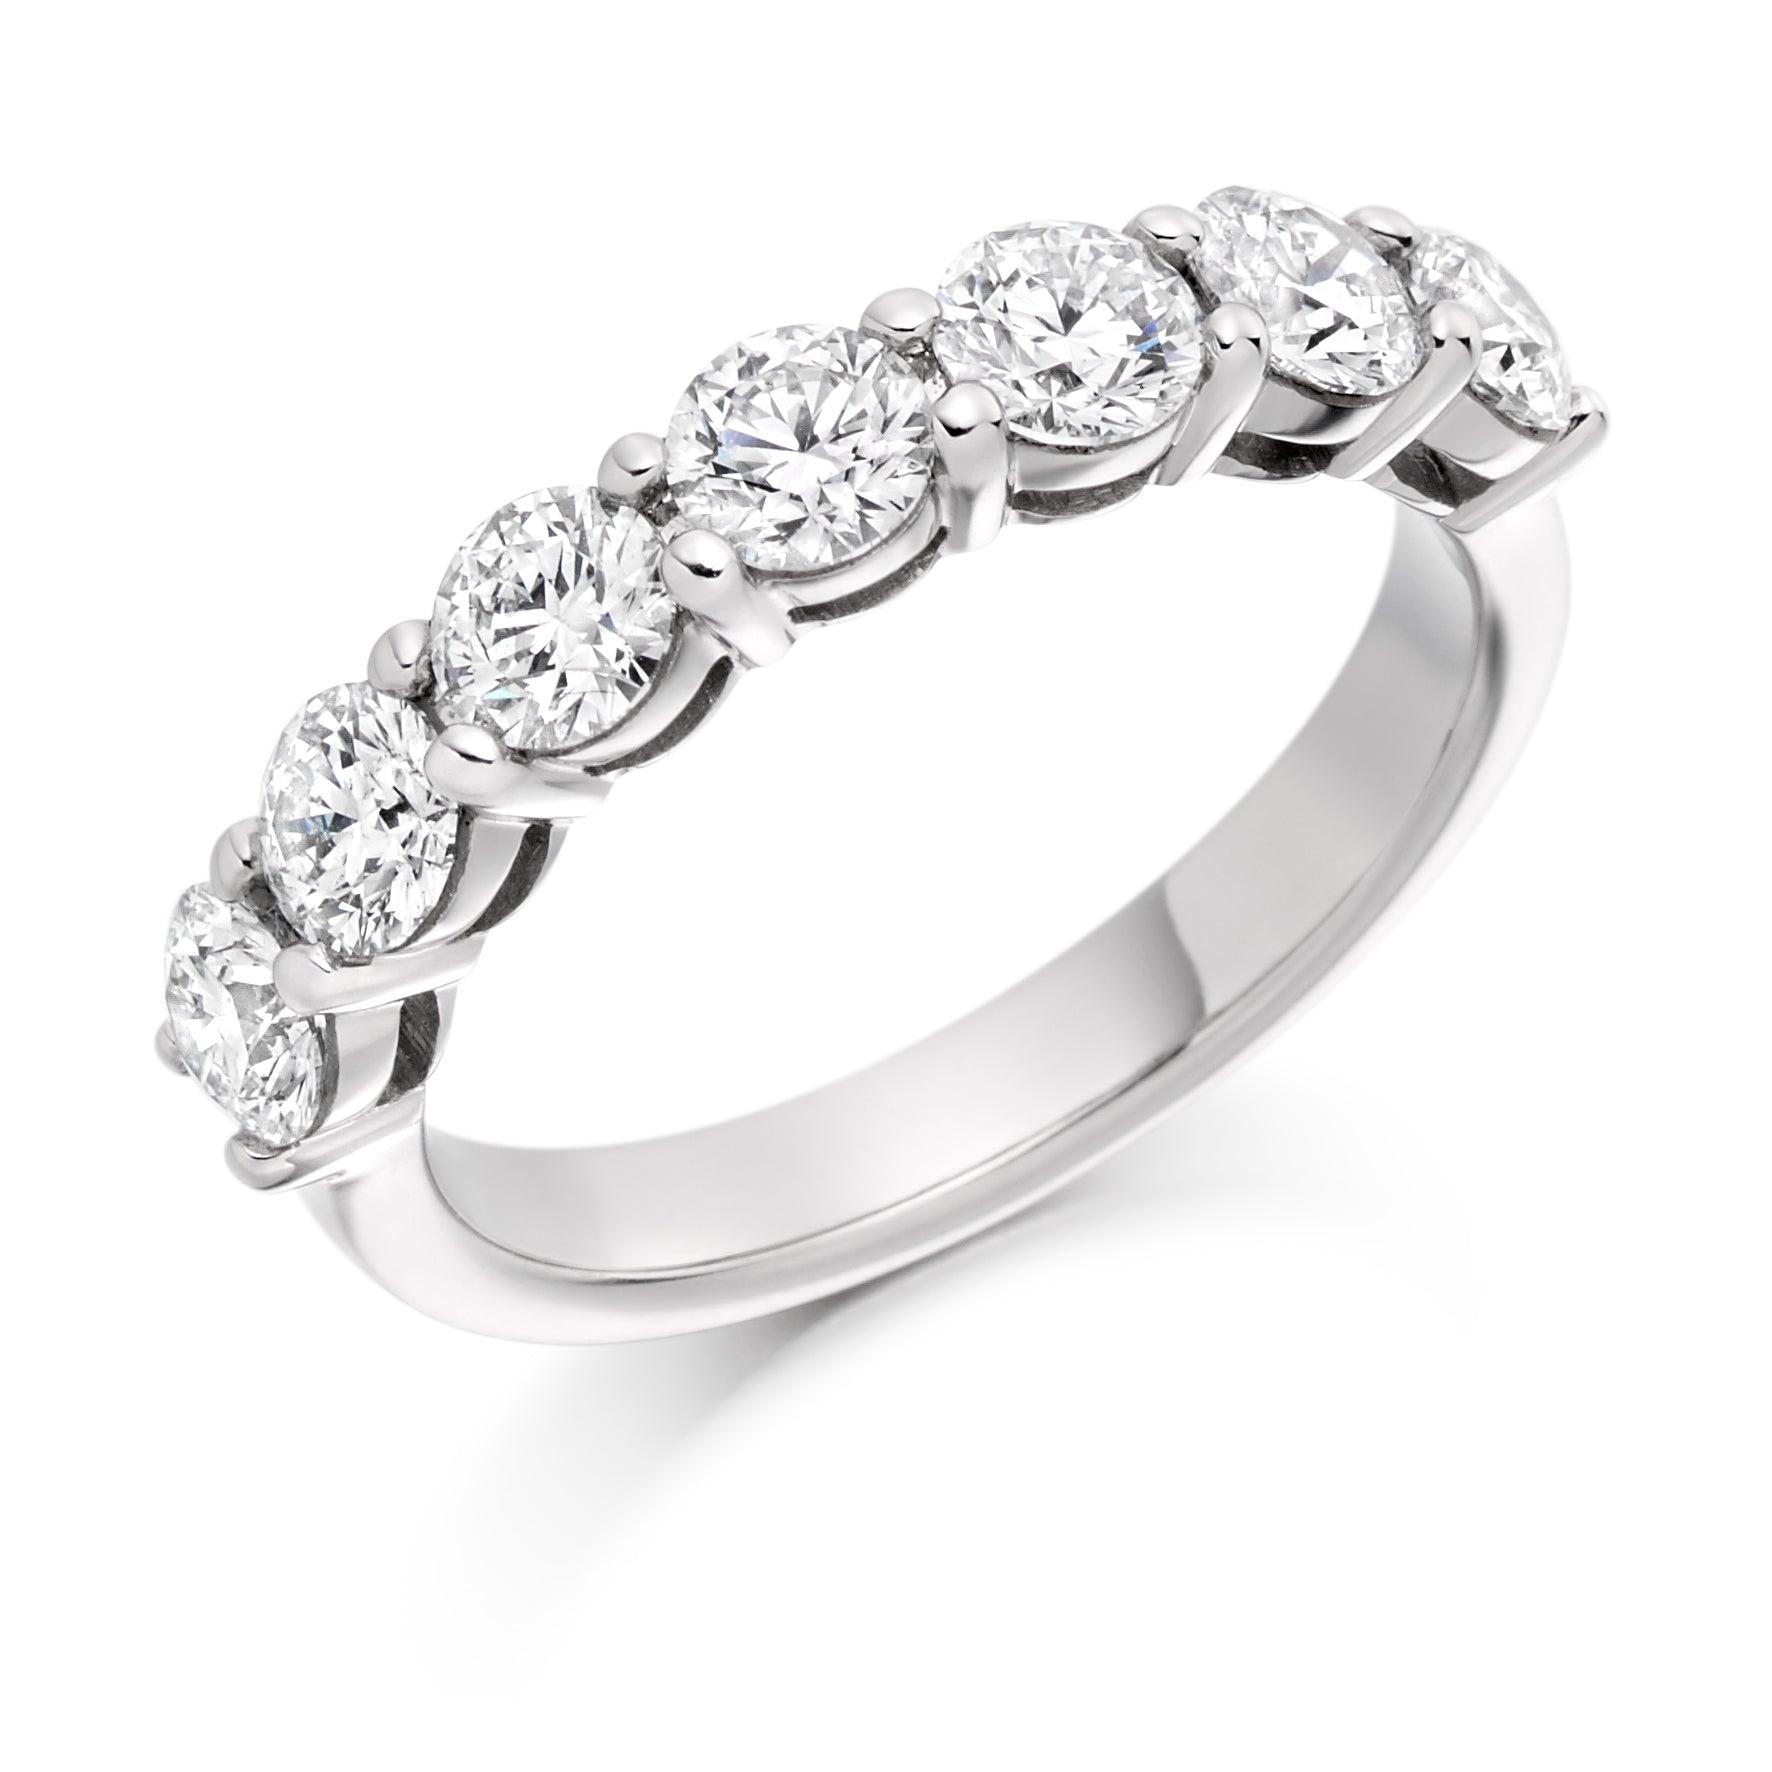 1.5ct Round Brilliant Cut Diamonds Claw Set Wedding Ring - (Home Try-On)